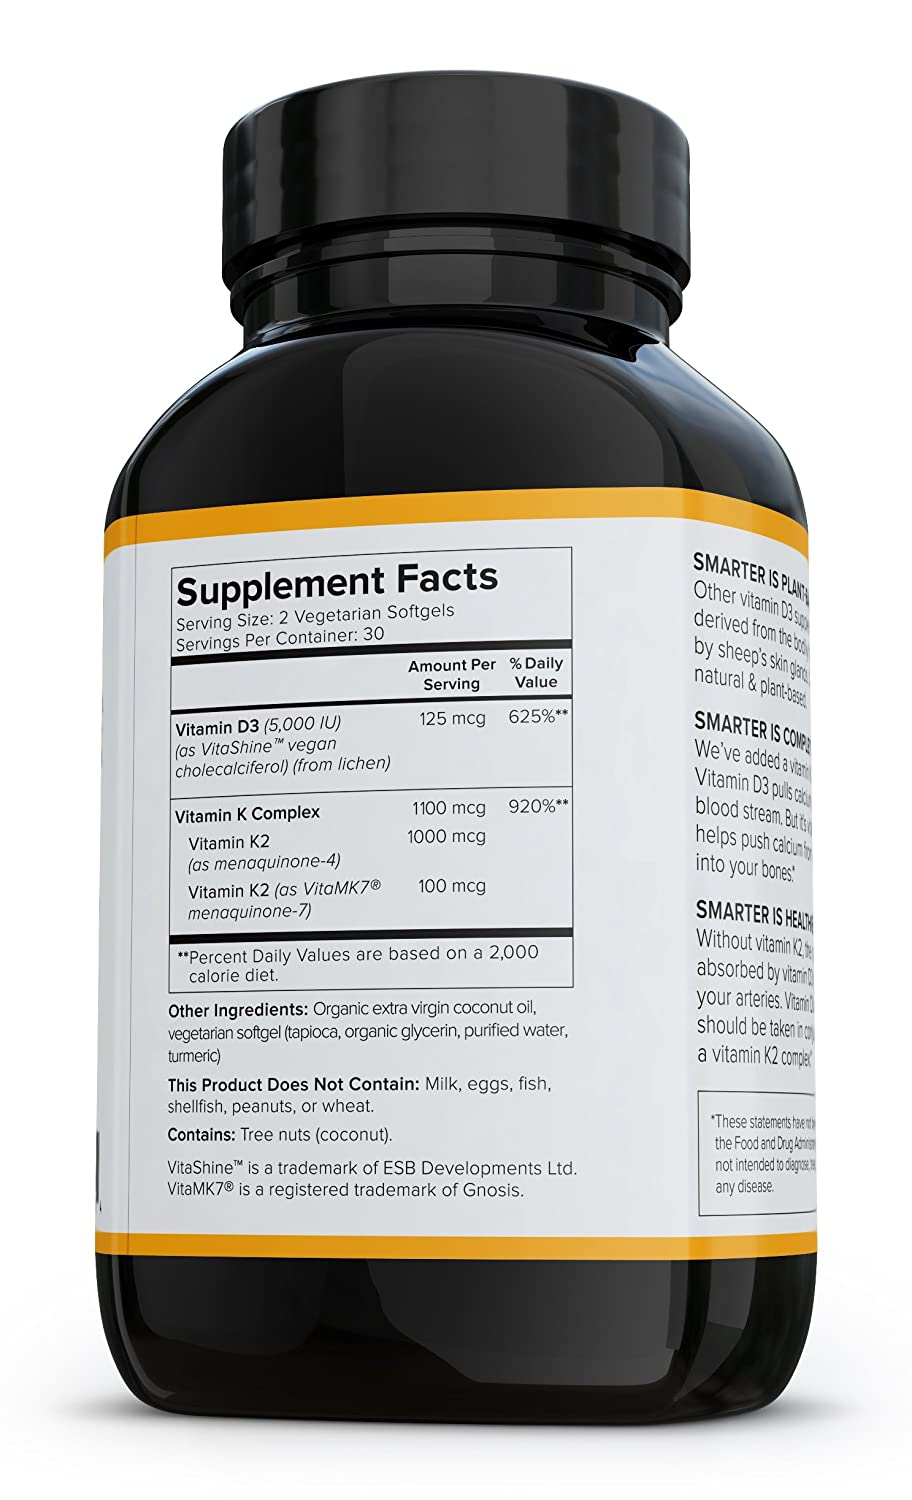 Amazon.com: Smarter Nutrition Plant-Based Vitamin D3 with K2 Complex for Healthy Bones and Arteries, Vegetarian Softgels (3 Month Supply): Health & Personal ...